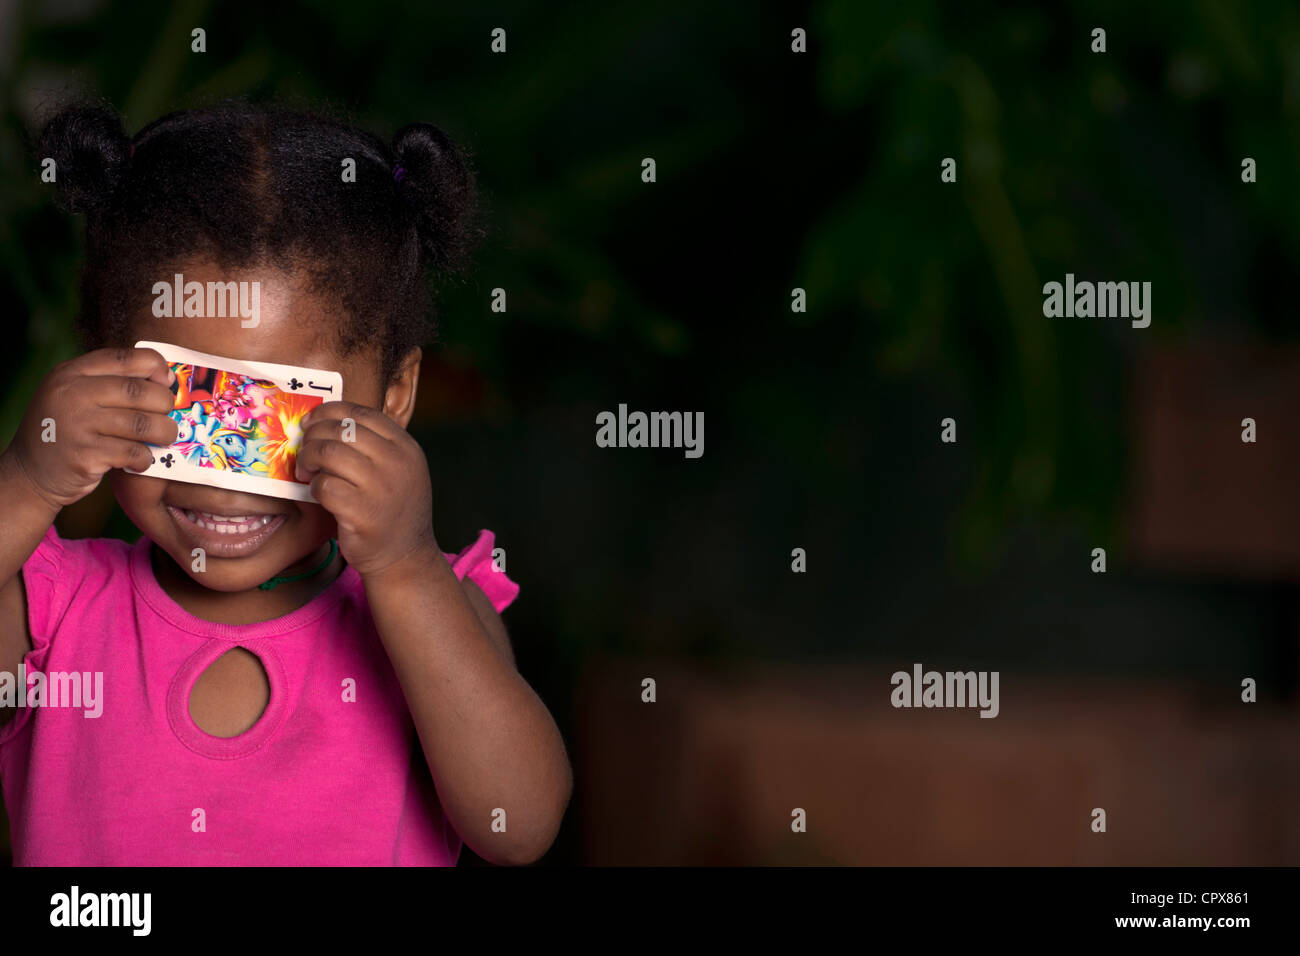 Young female black child holding a playing card over her eyes - Stock Image